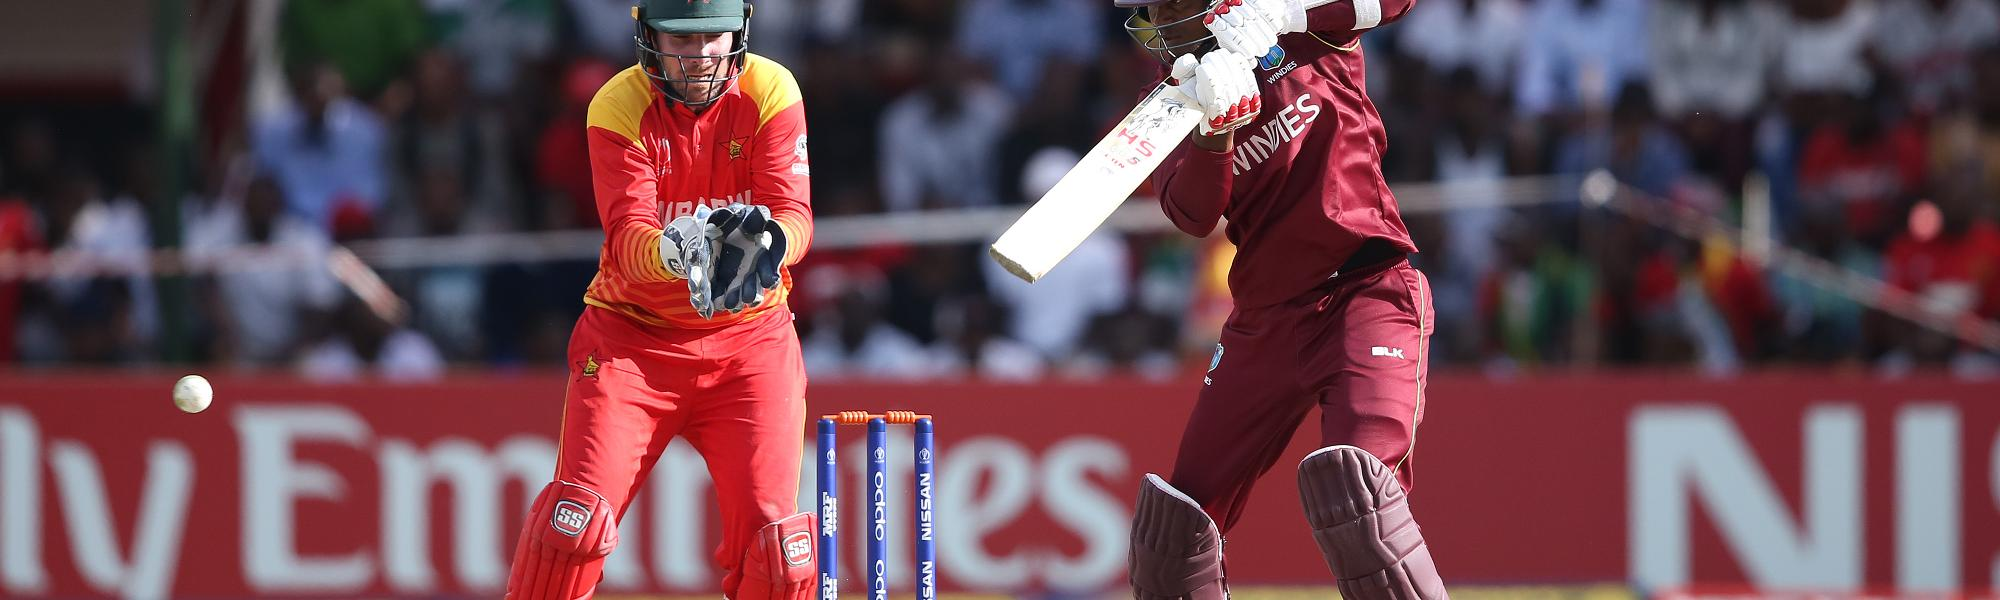 Brendan Taylor of Zimbabwe looks on as Marlon Samuels of The Windies scores runs during The Cricket World Cup Qualifier between The Windies and Zimbabwe at The Harare Sports Club on March 19, 2018 in Harare, Zimbabwe (©ICC).